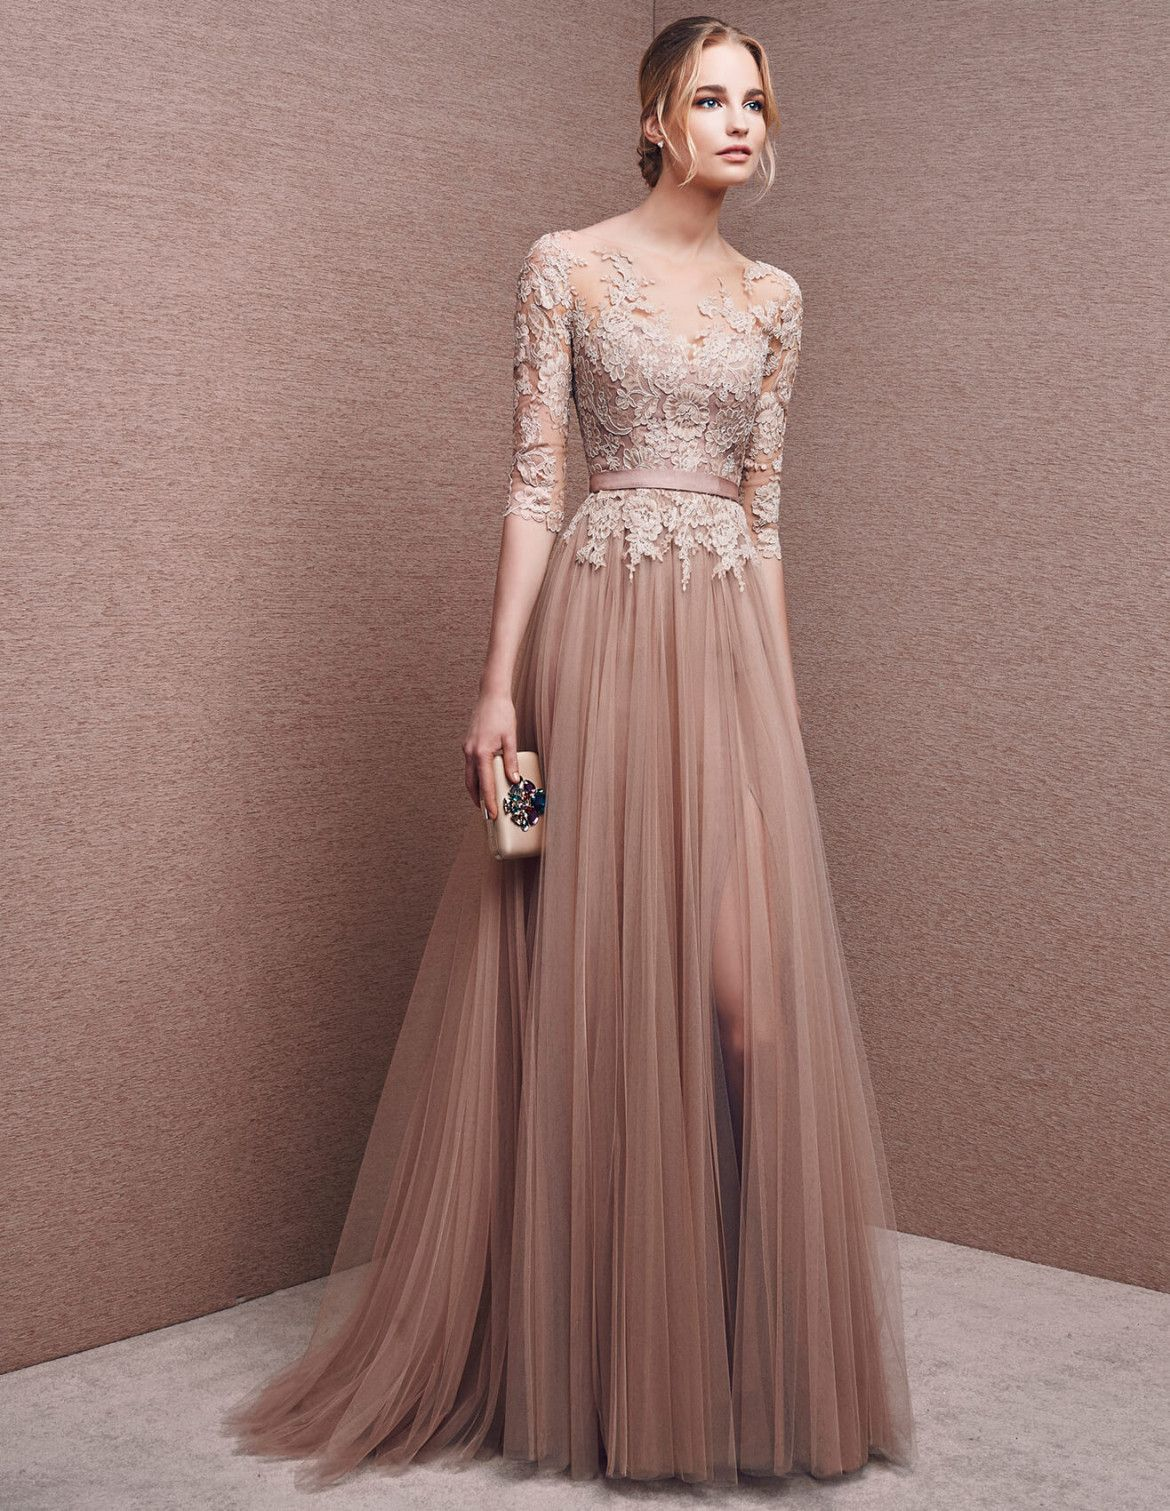 Tulle dress, with sweetheart neckline. | Vestidos | Pinterest | Kleider